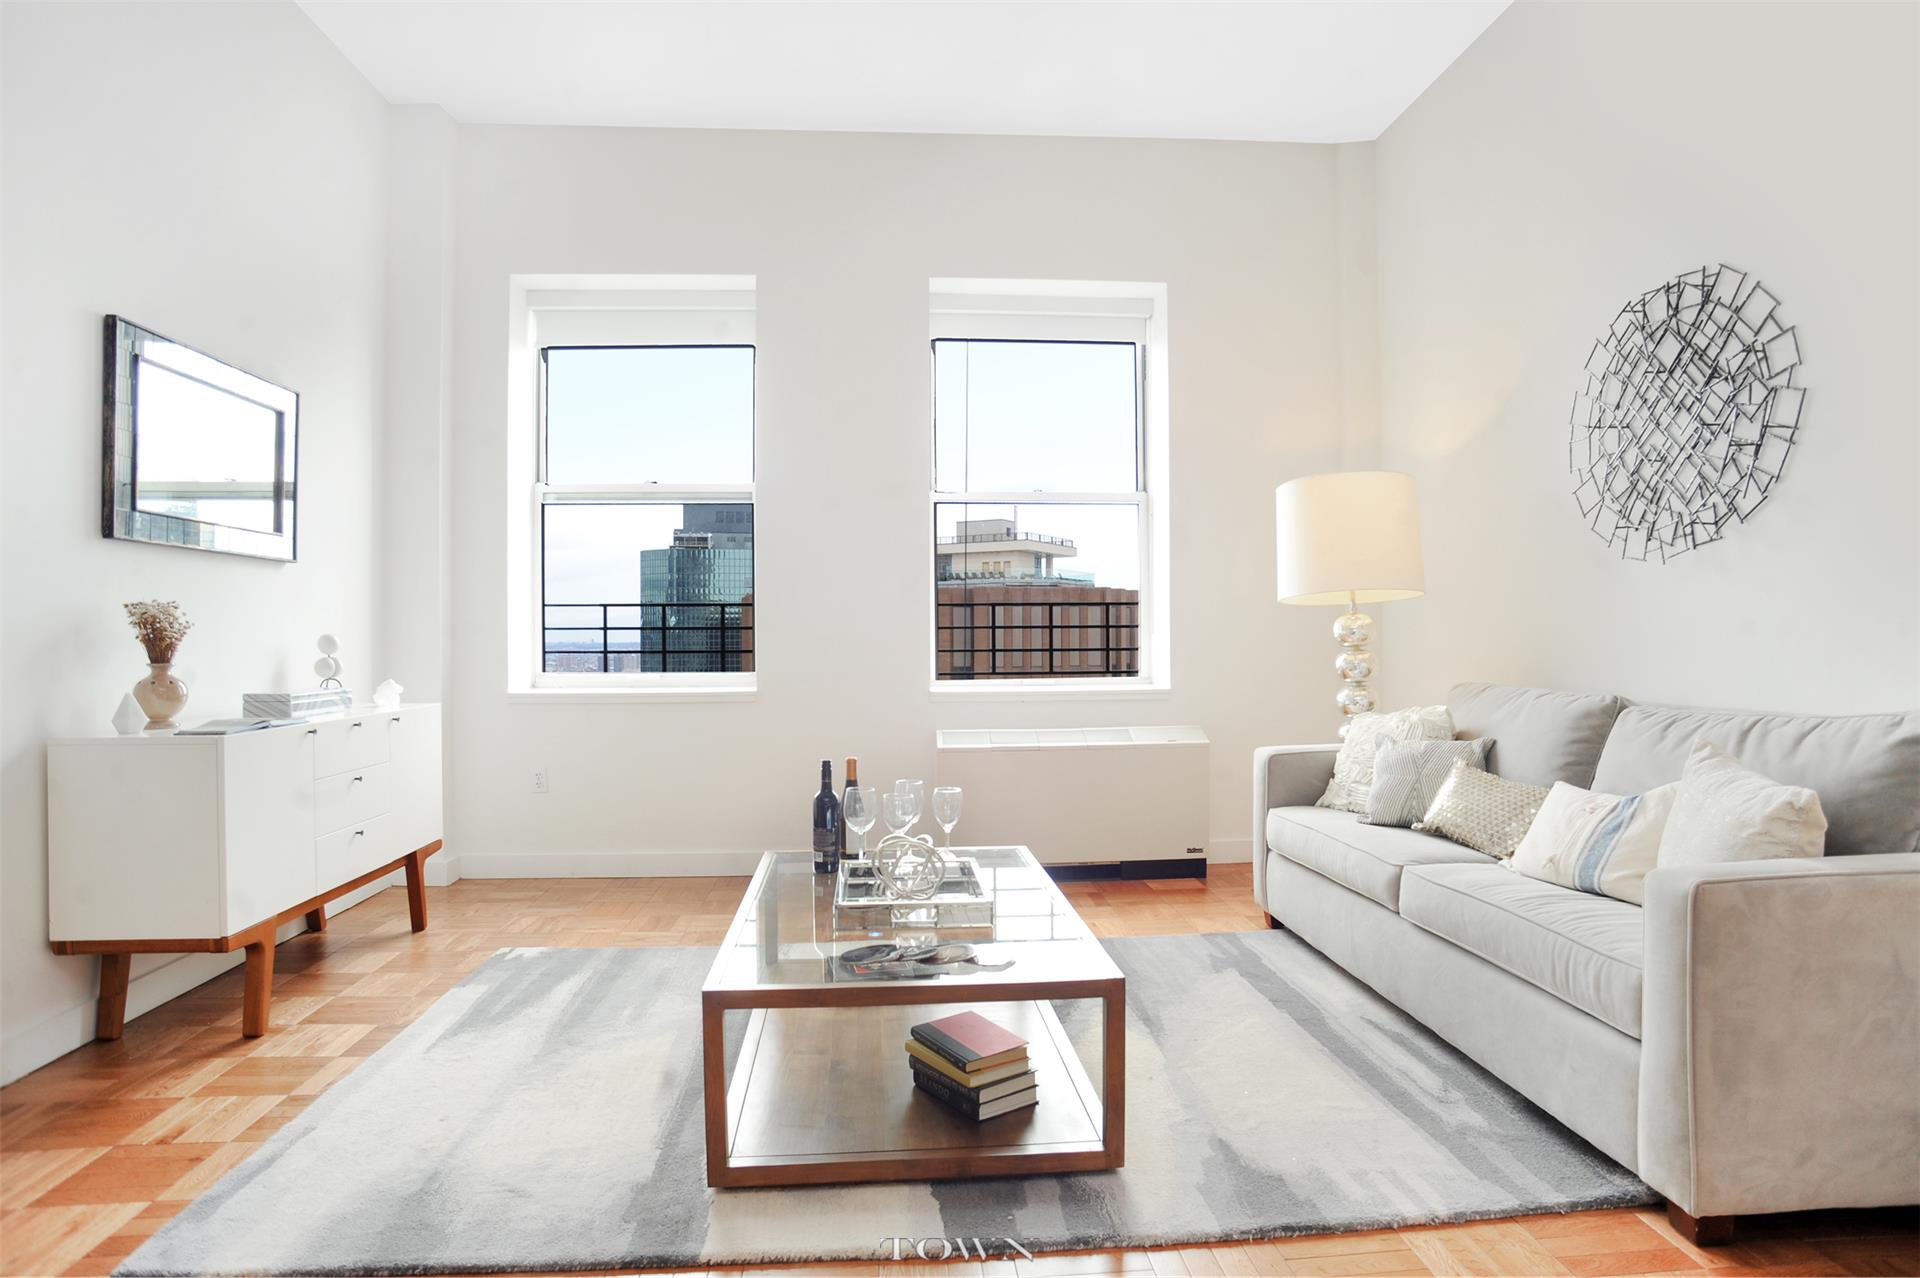 Rentals for Rent at 20 Exchange Place, #4201 20 Exchange Place New York, New York 10005 United States